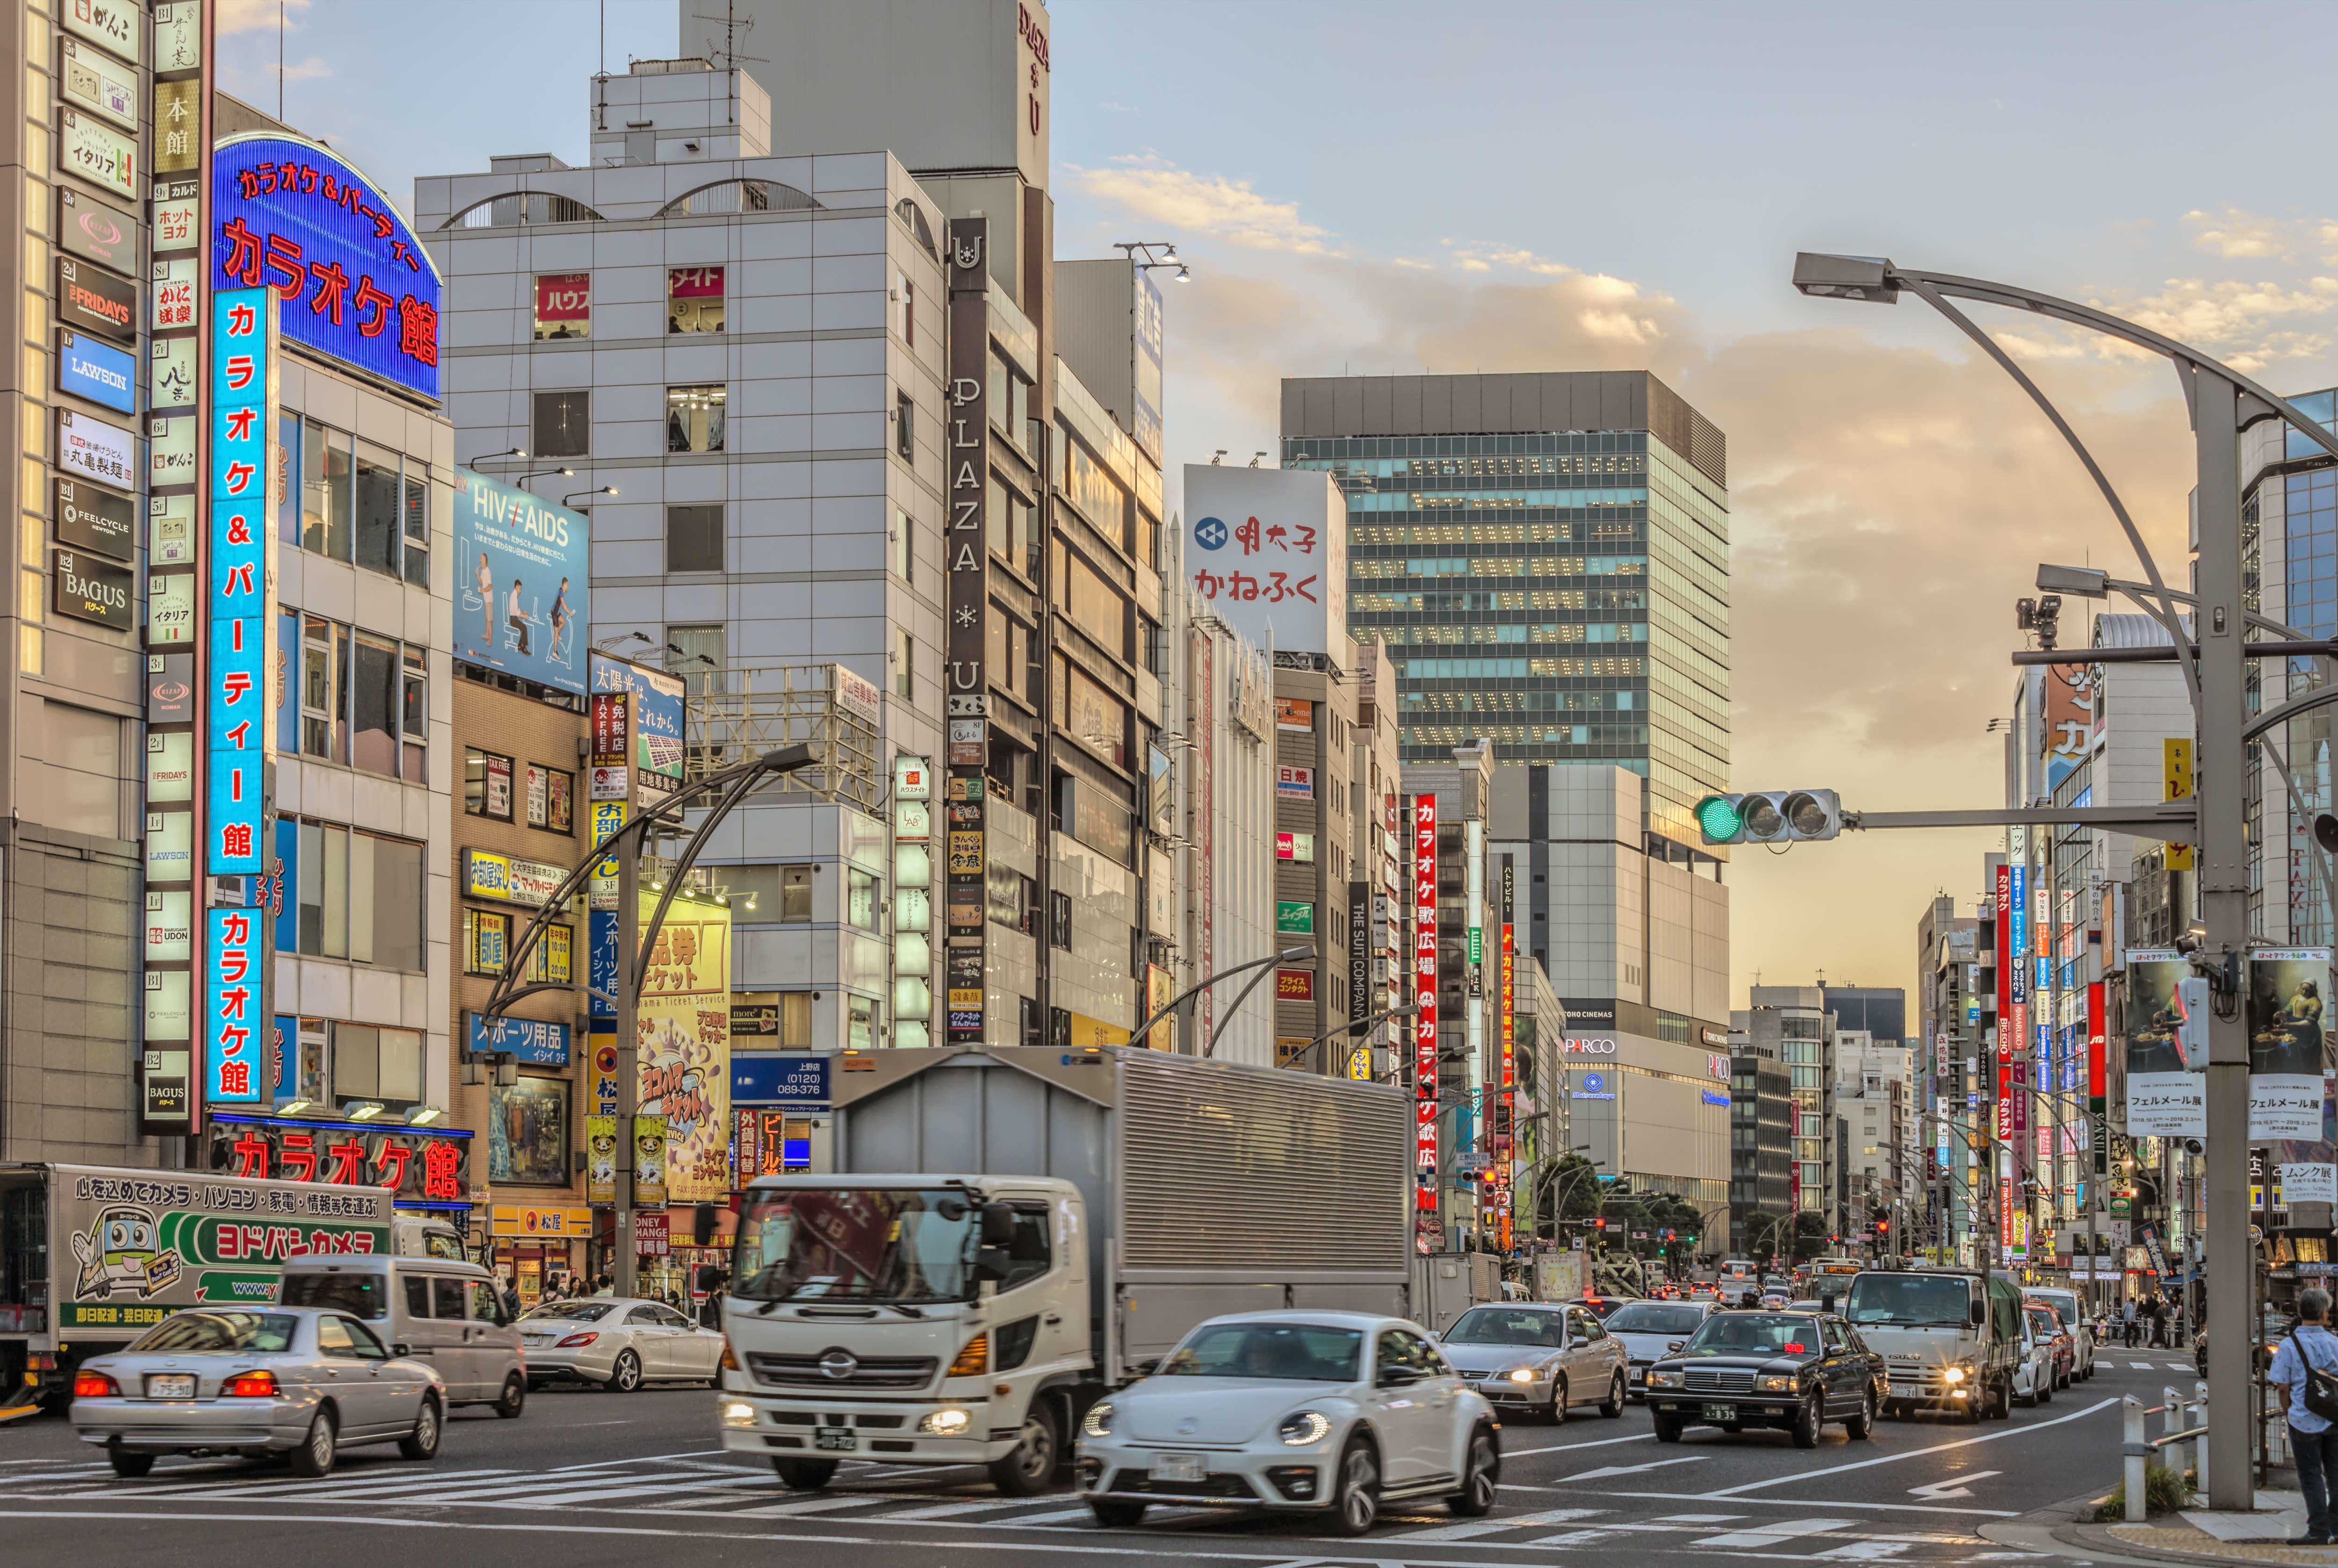 Cityscape at Ueno Business District at dawn